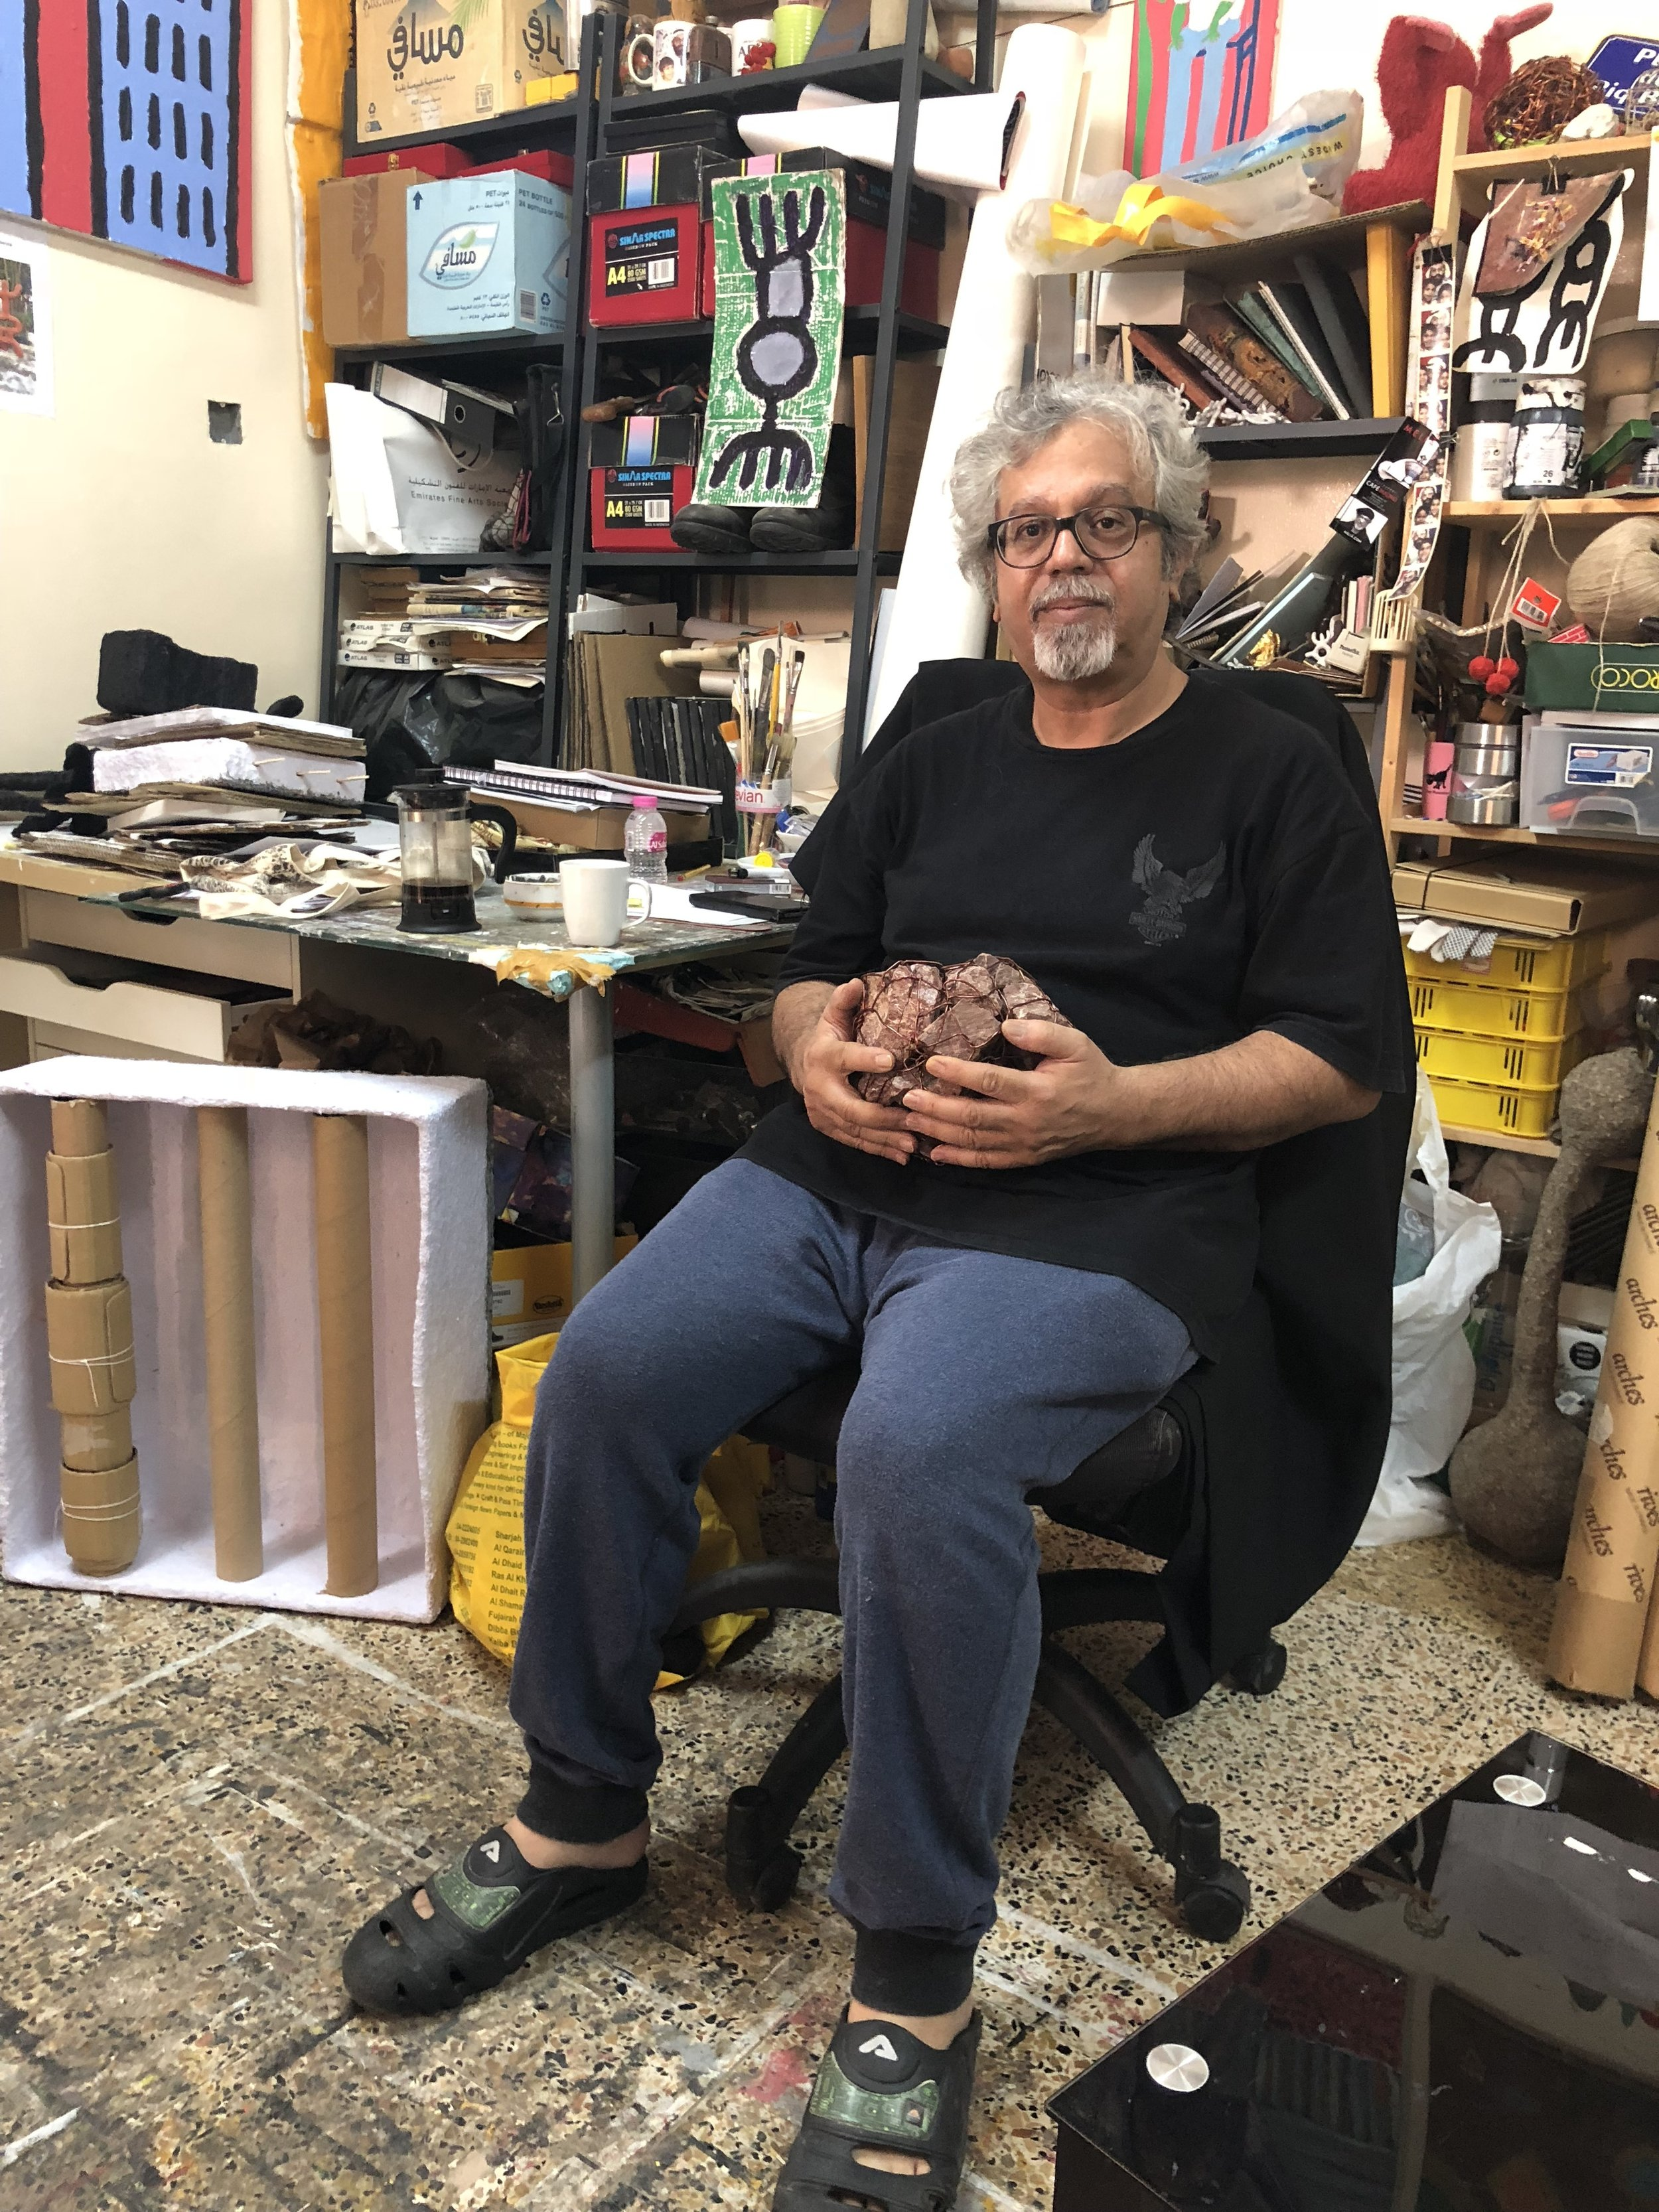 Mohammed Ahmed Ibrahim in his home studio, holding one of his collections of rocks. Image taken by Anna Seaman.